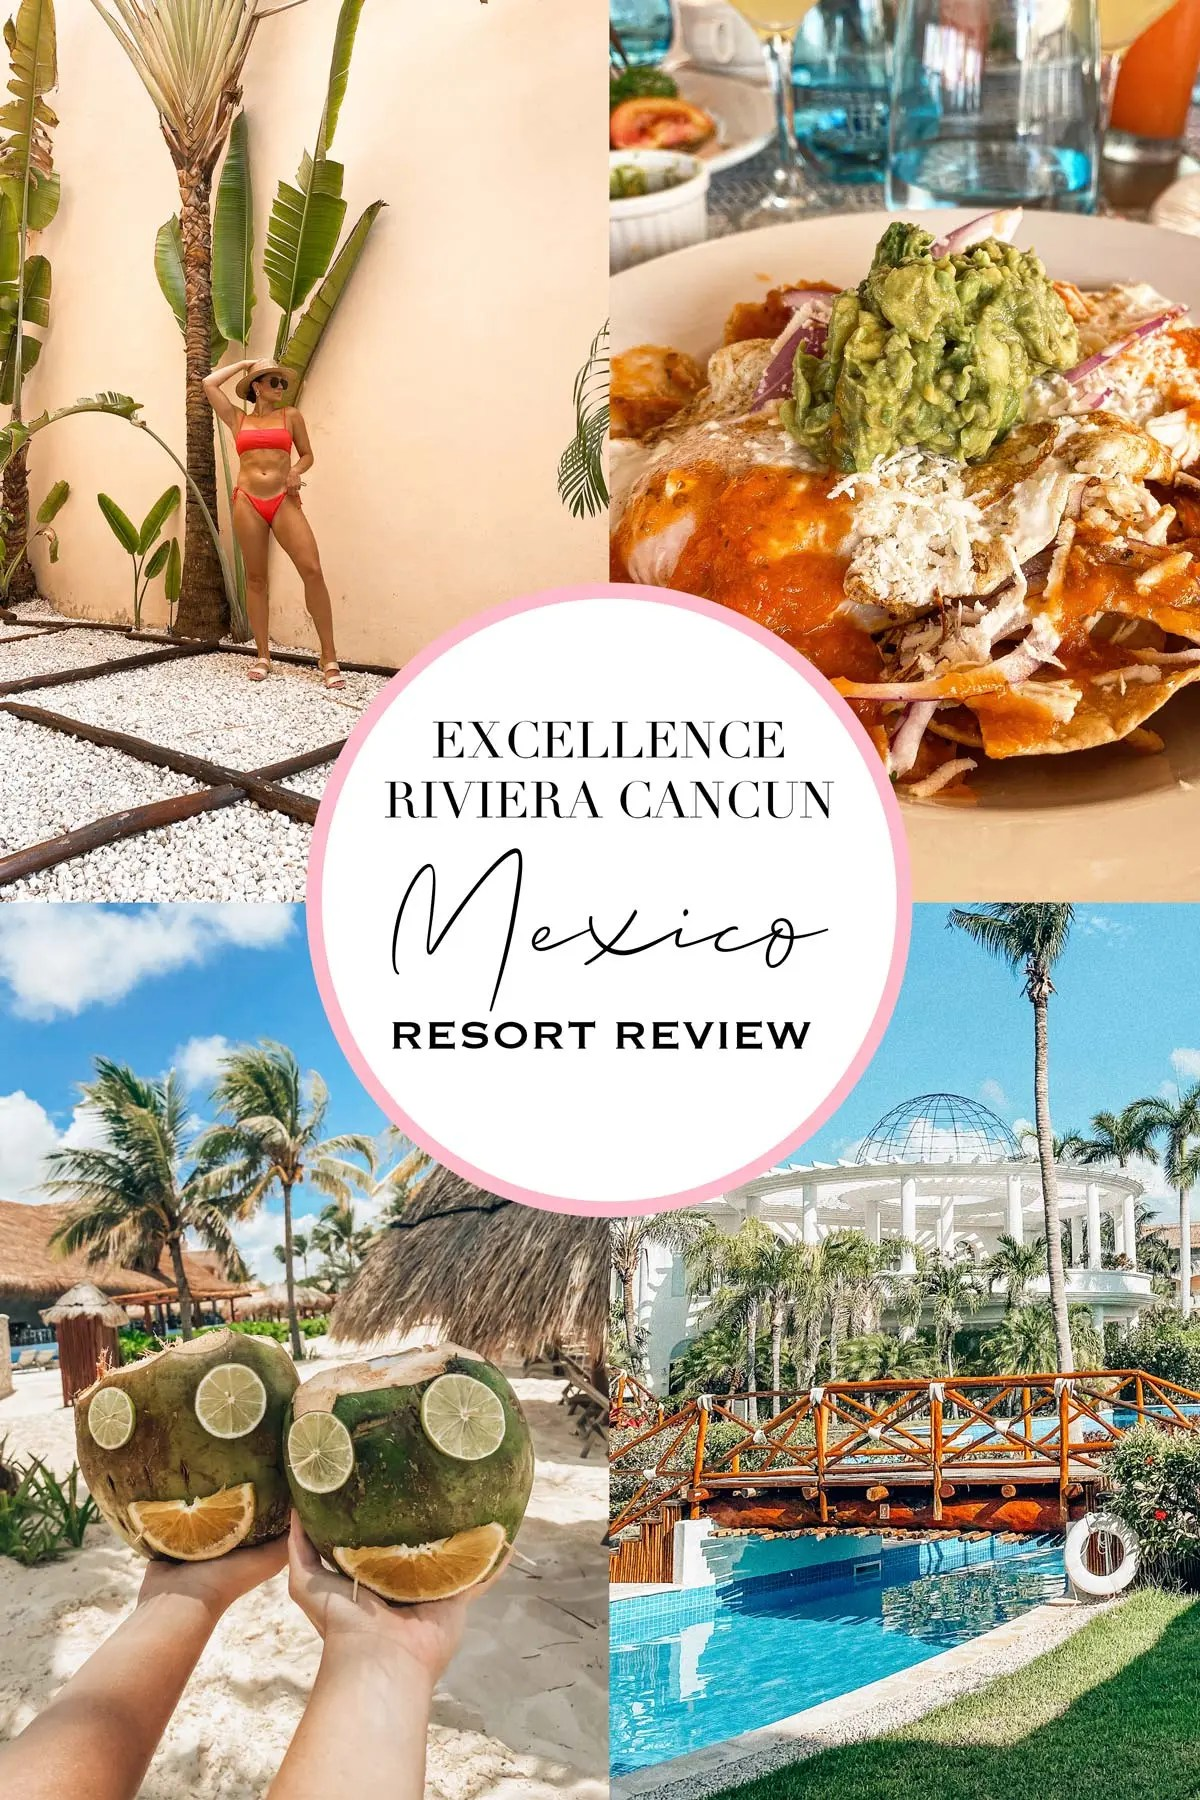 Excellence Riviera Cancun Review